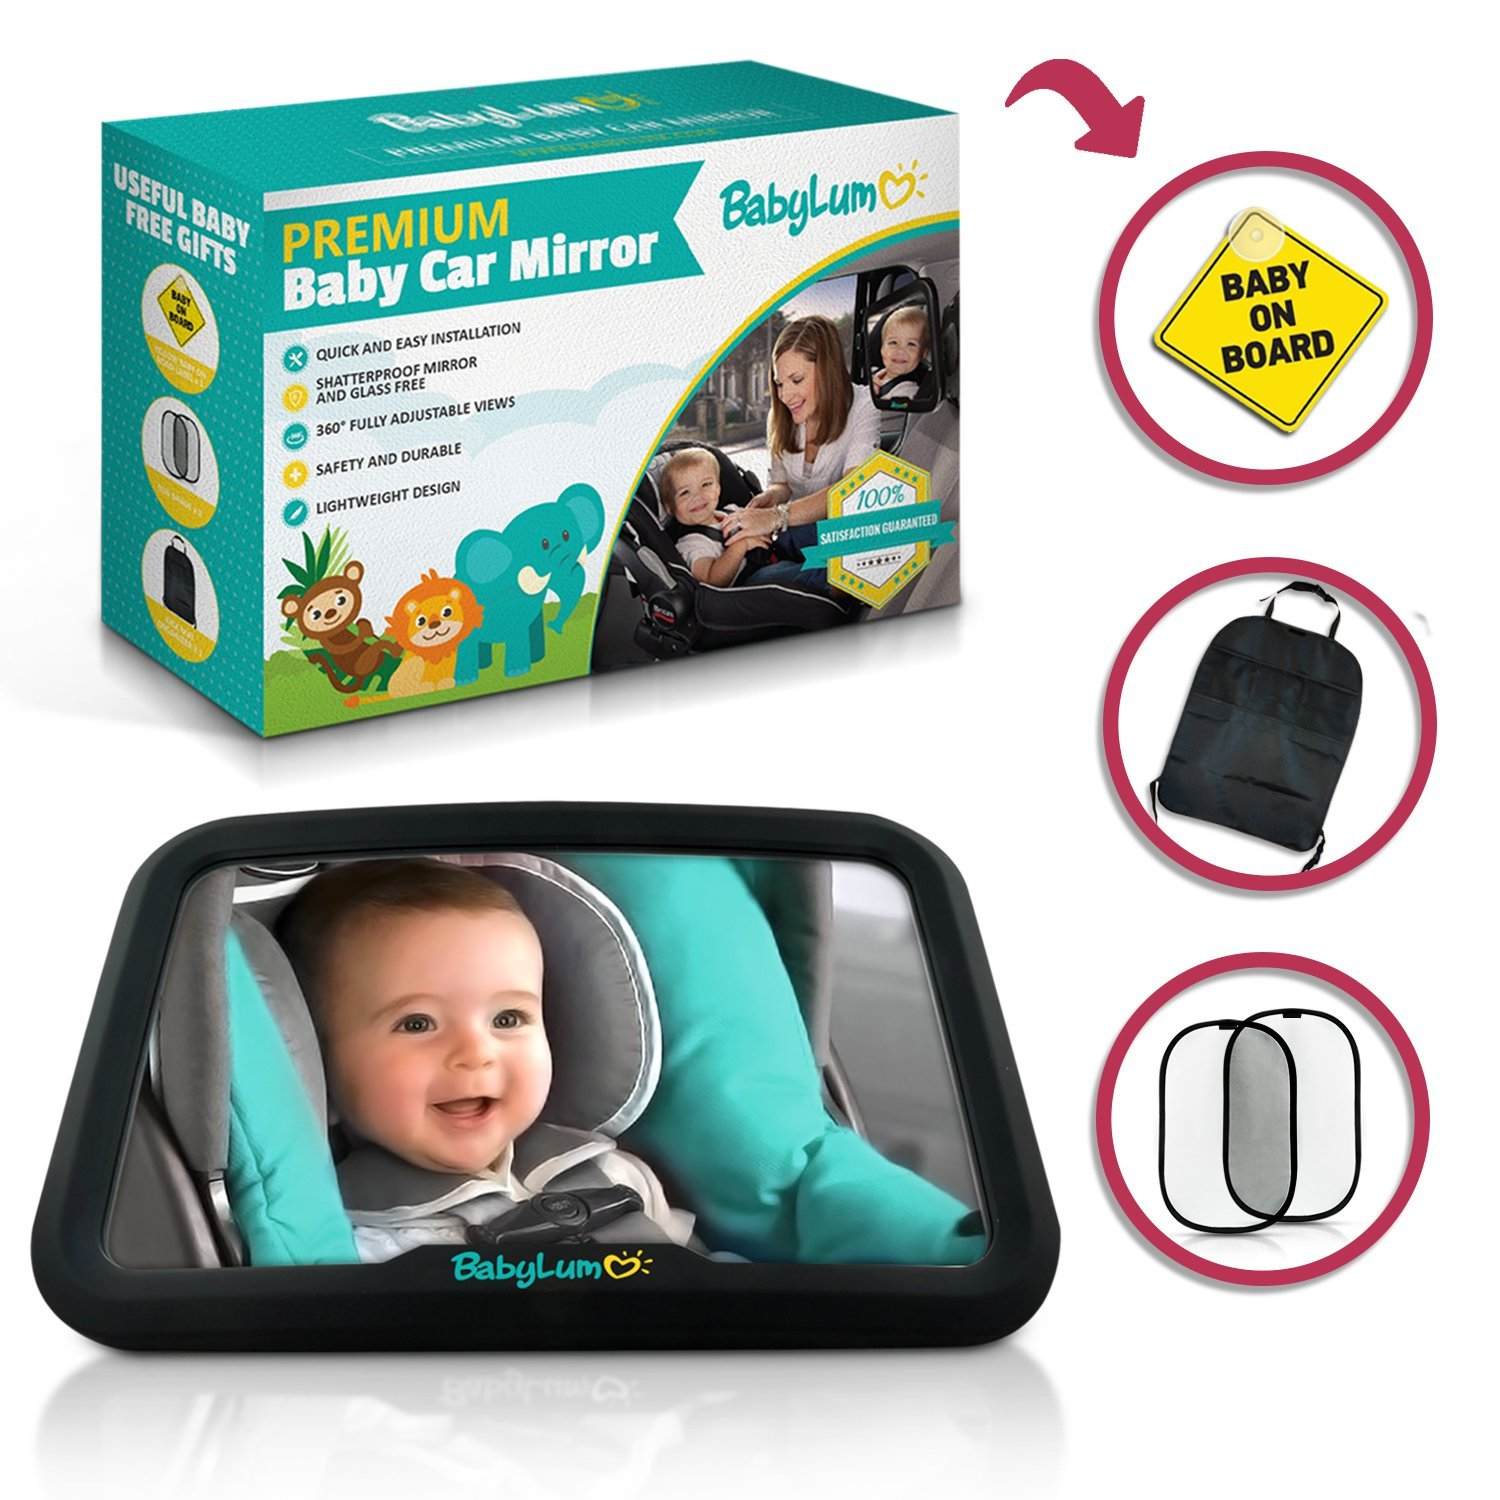 BabyLum Baby Backseat Car Mirror - View Infant in Rear Facing Carseat, Crash Safe, Crystal Clear Large Shatterproof Mirror, Include 1 Baby On Board Sign, Kick Mat, 2 Sun Shades by BabyLum